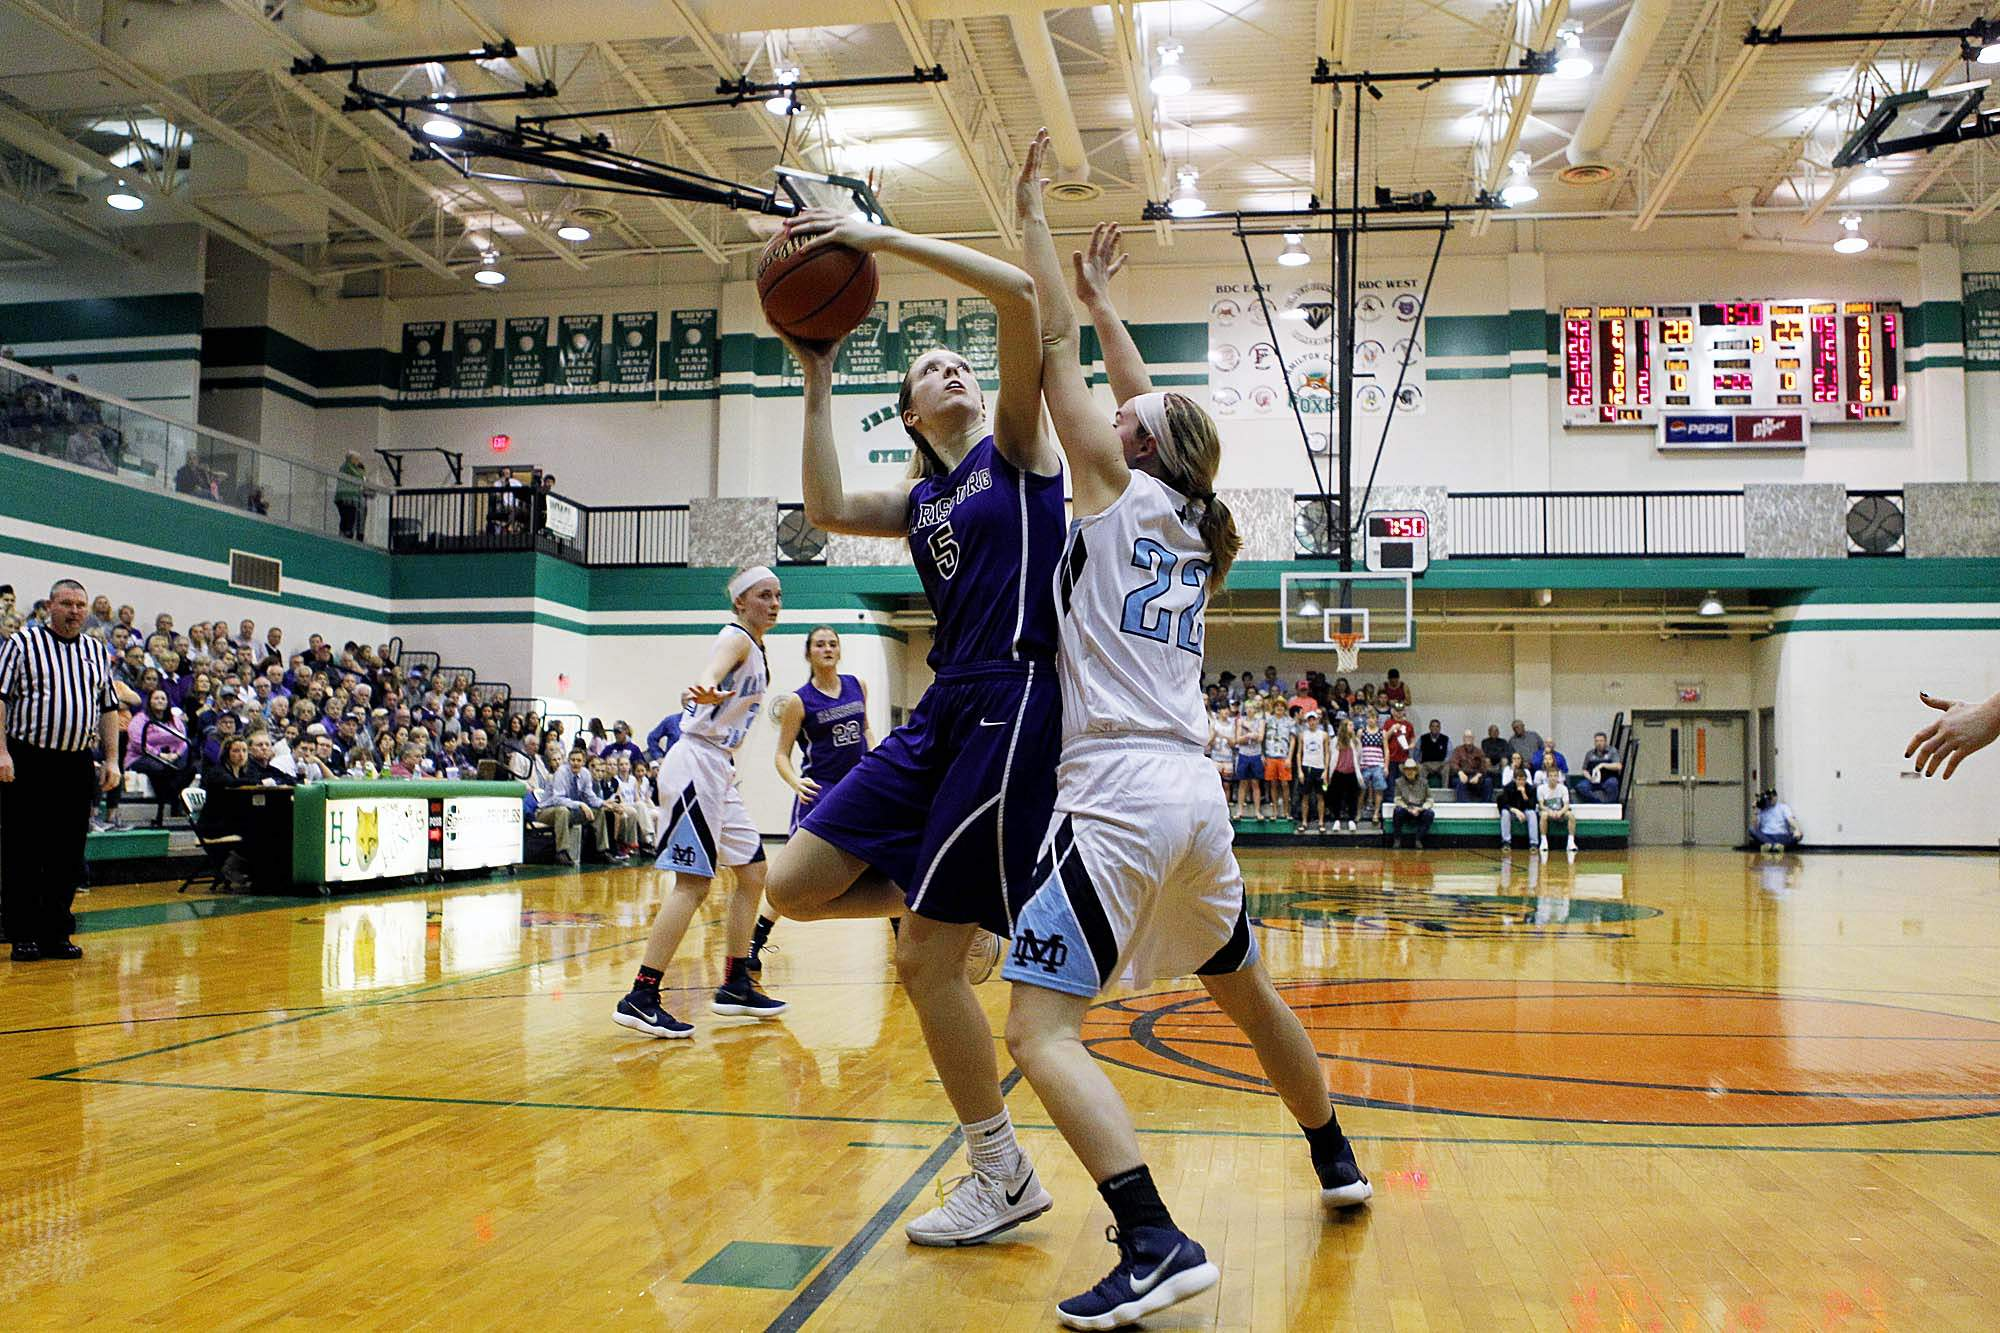 Matty Hawkins puts up this second half shot against Breese Mater Dei's Myah Beckman. Hawkins had a team-high 13 points for the Bulldogs in a 55-44 loss